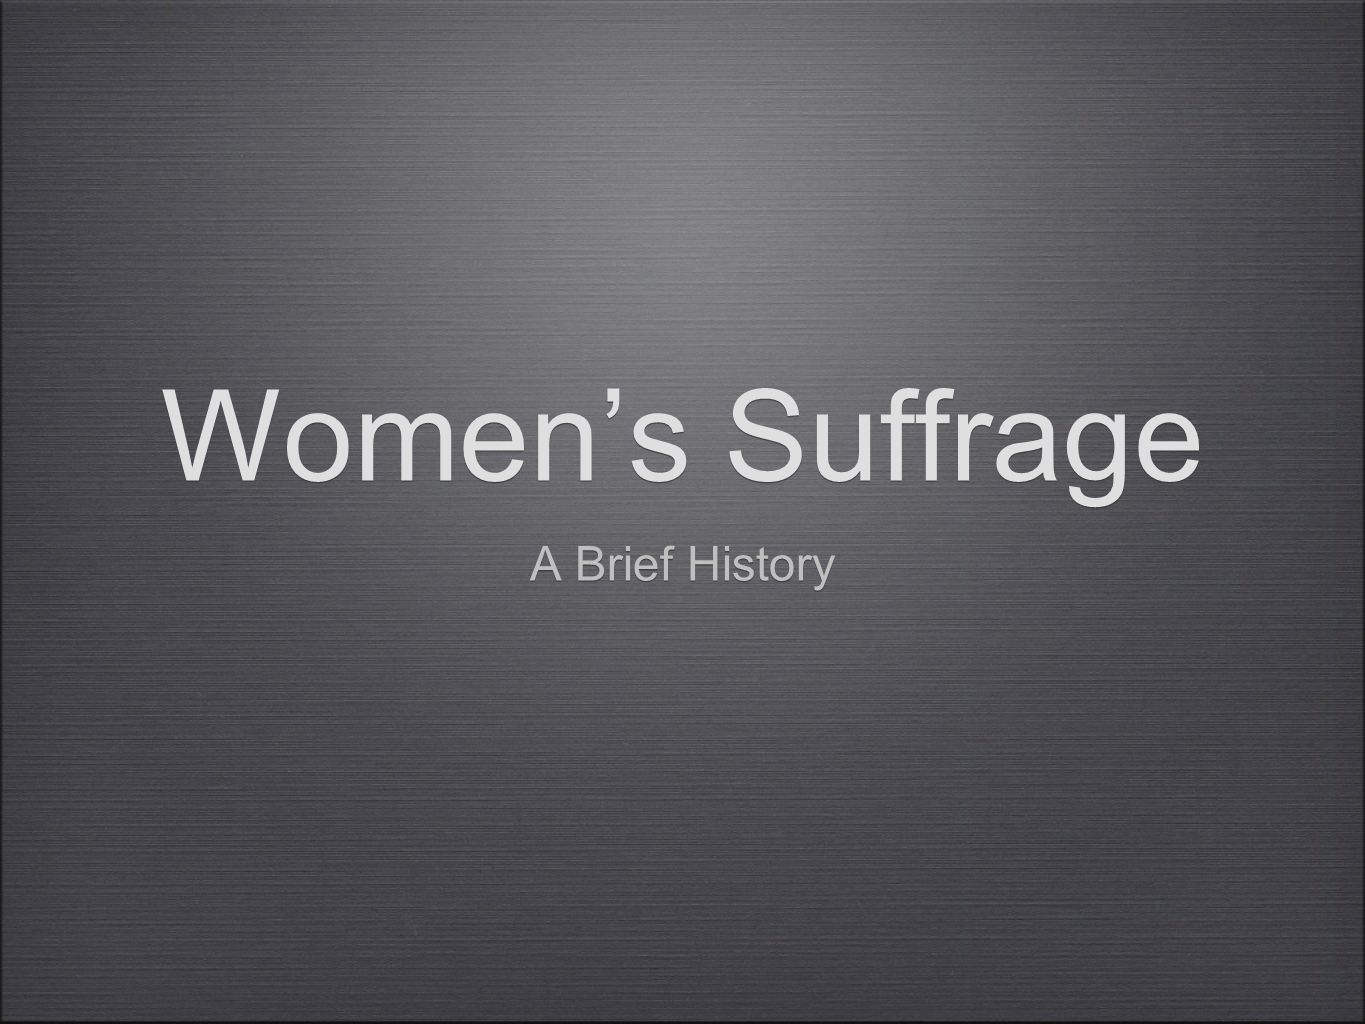 Women's Suffrage A Brief History